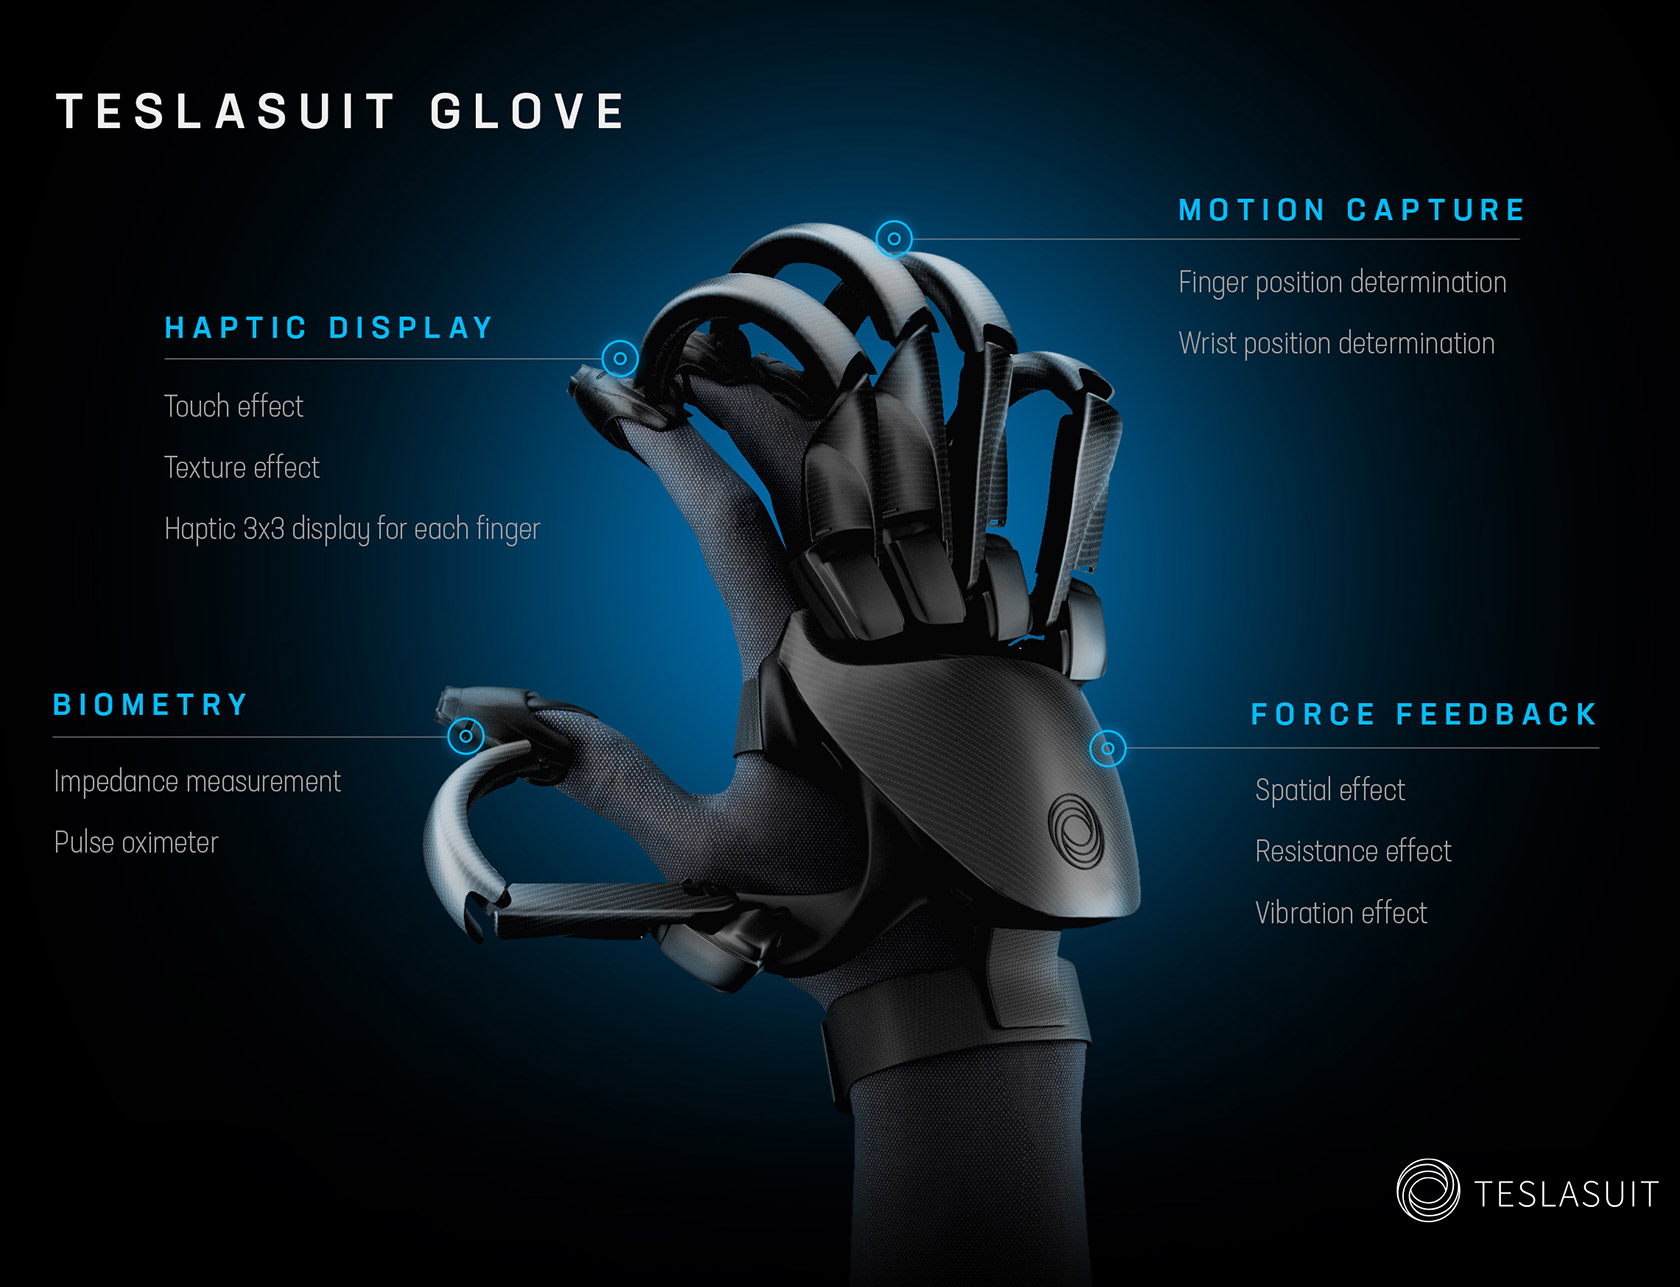 Teslasuit Glove Virtual Reality